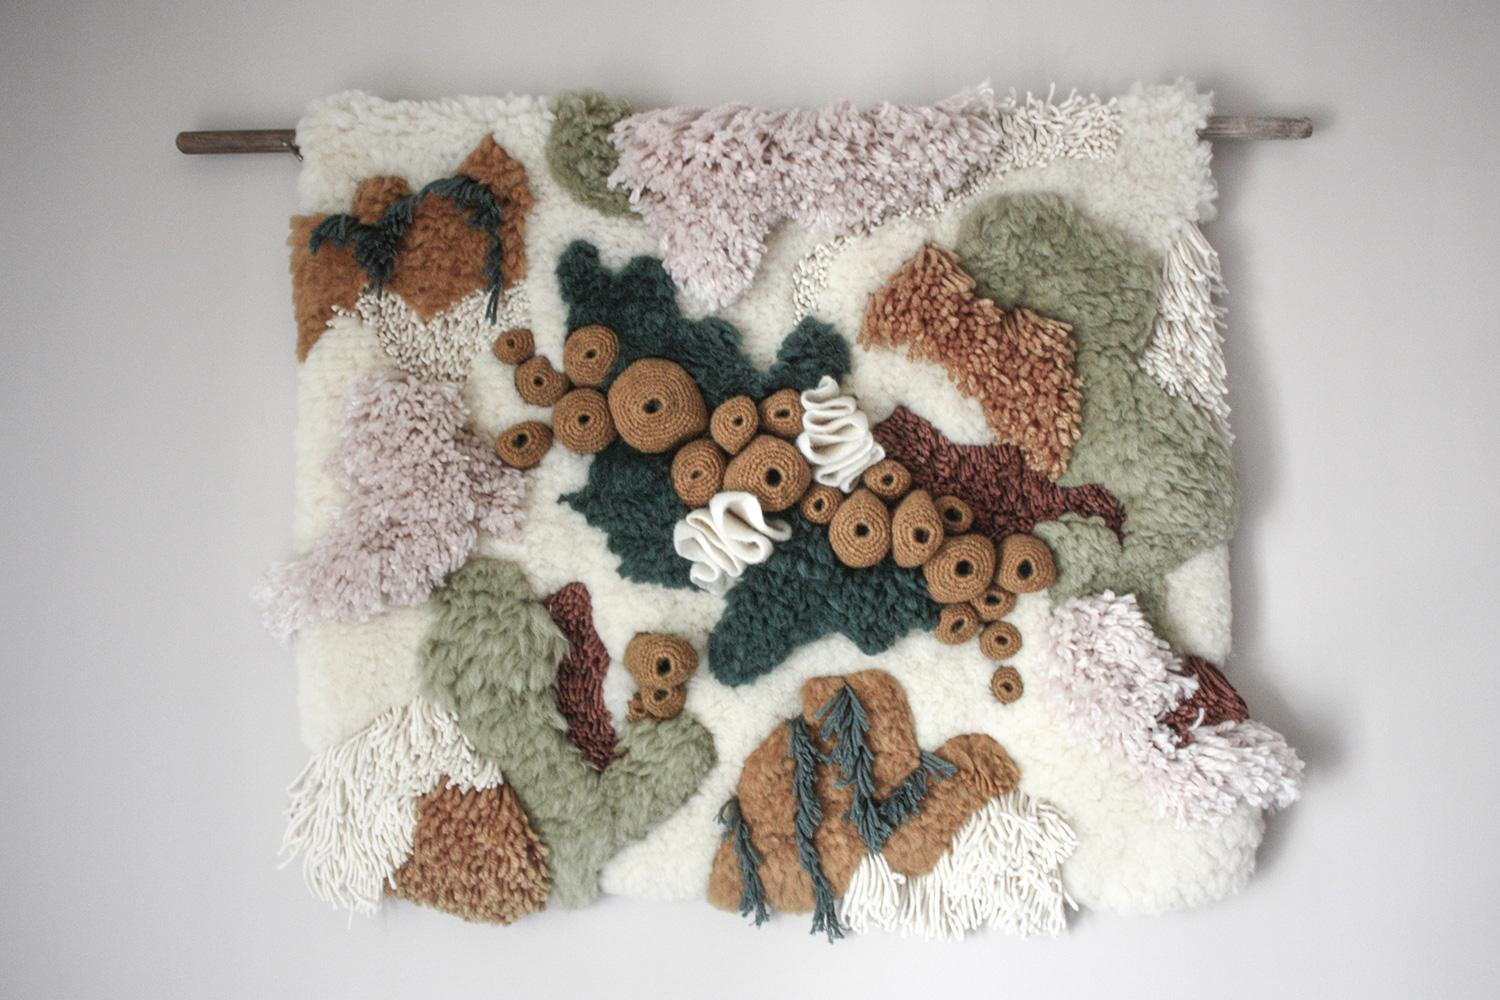 Nature-Based Textiles by Vanessa Barragao Highlight Ecosystems Above and Below the Sea